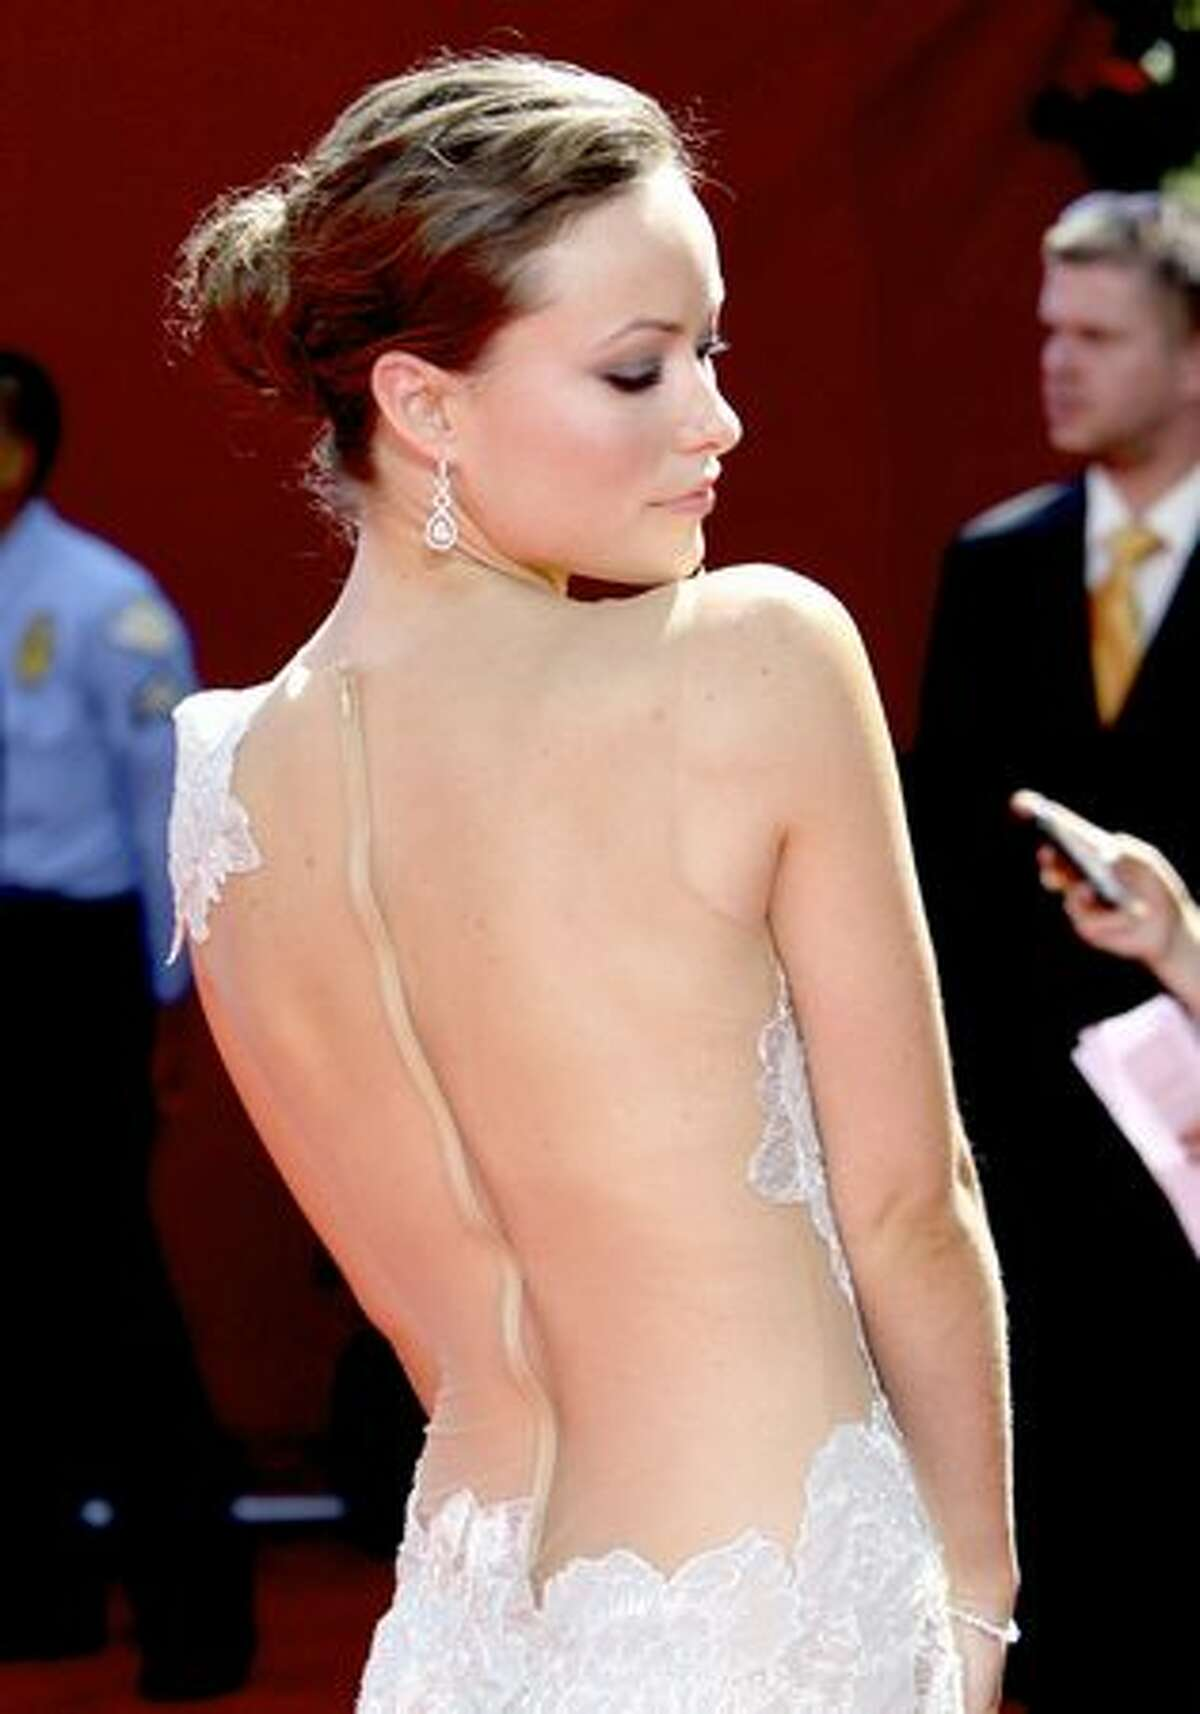 Actress Olivia Wilde arrives at the Primetime Emmy Awards in Los Angeles in September 2009.